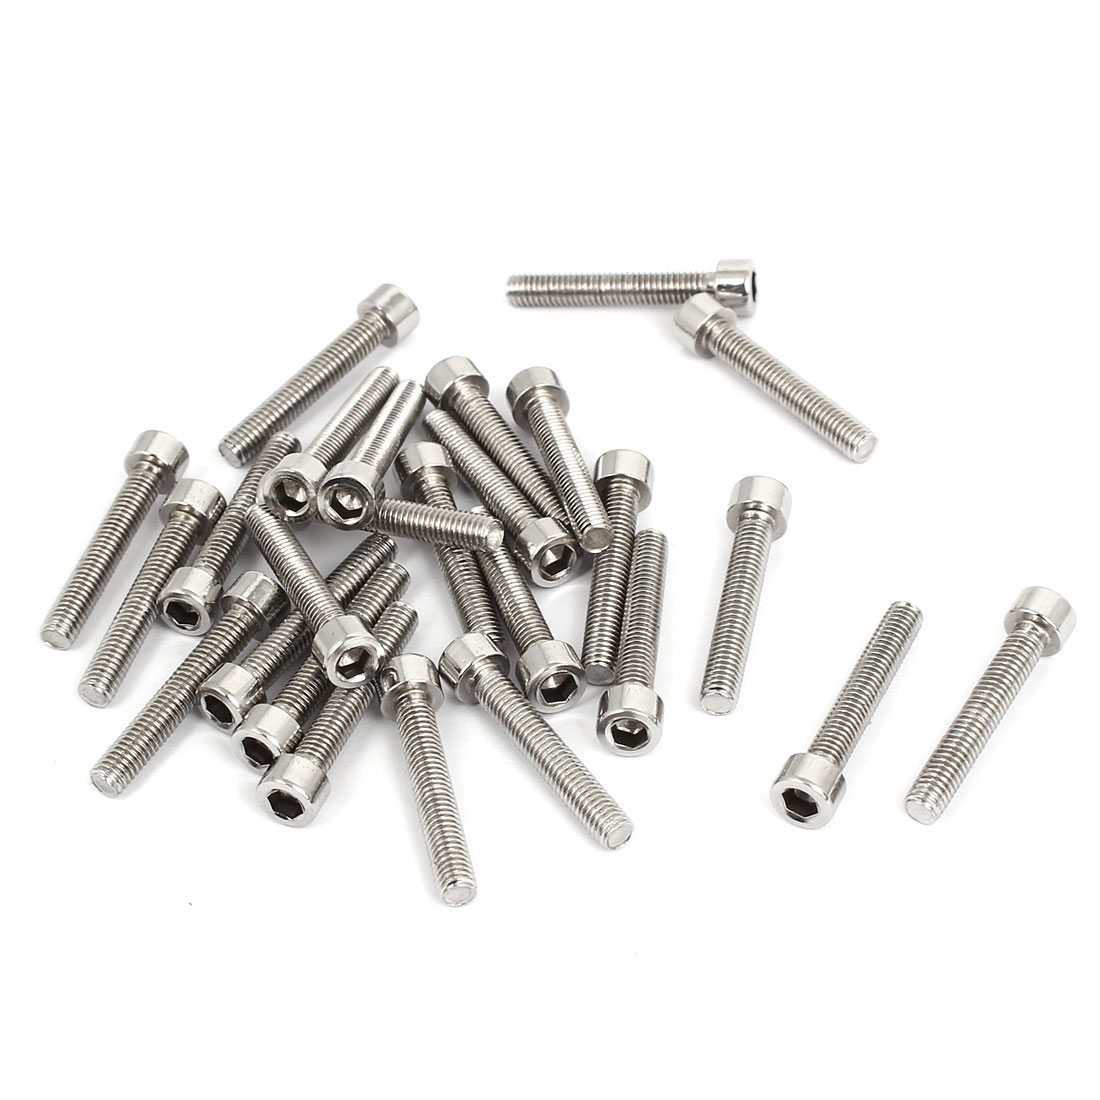 25pcs 4mm Stainless Steel Hex Key Socket Head Cap Screws Bolts M5x0.8mmx30mm